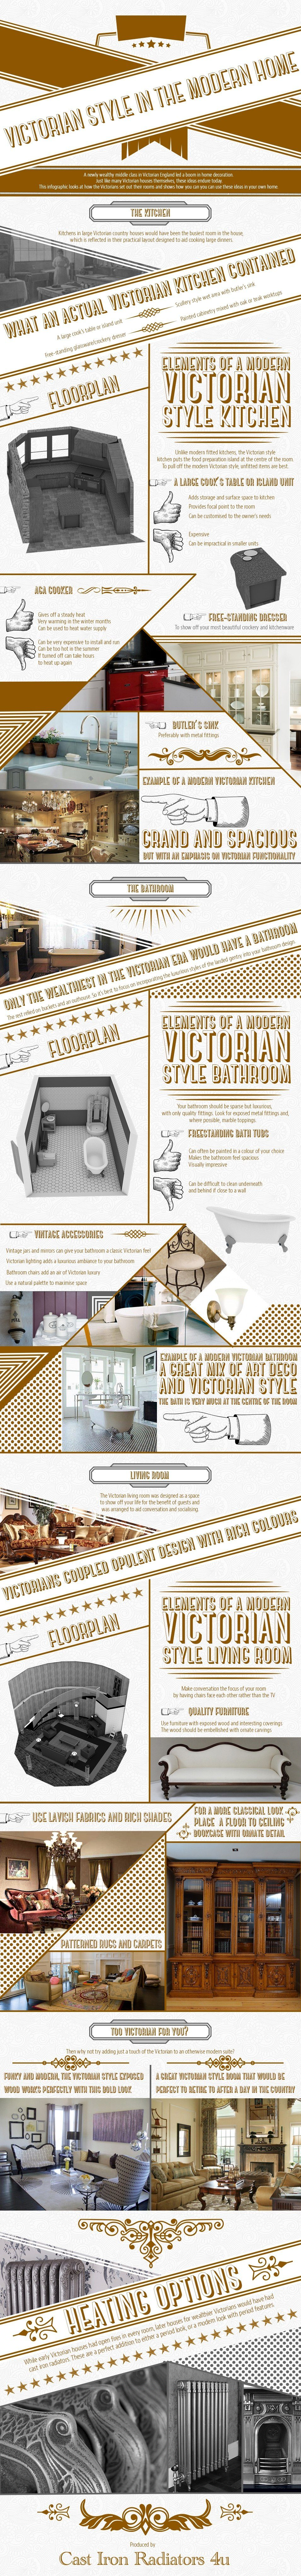 Adding Victorian Style to Your Modern Home Today (Infographic)